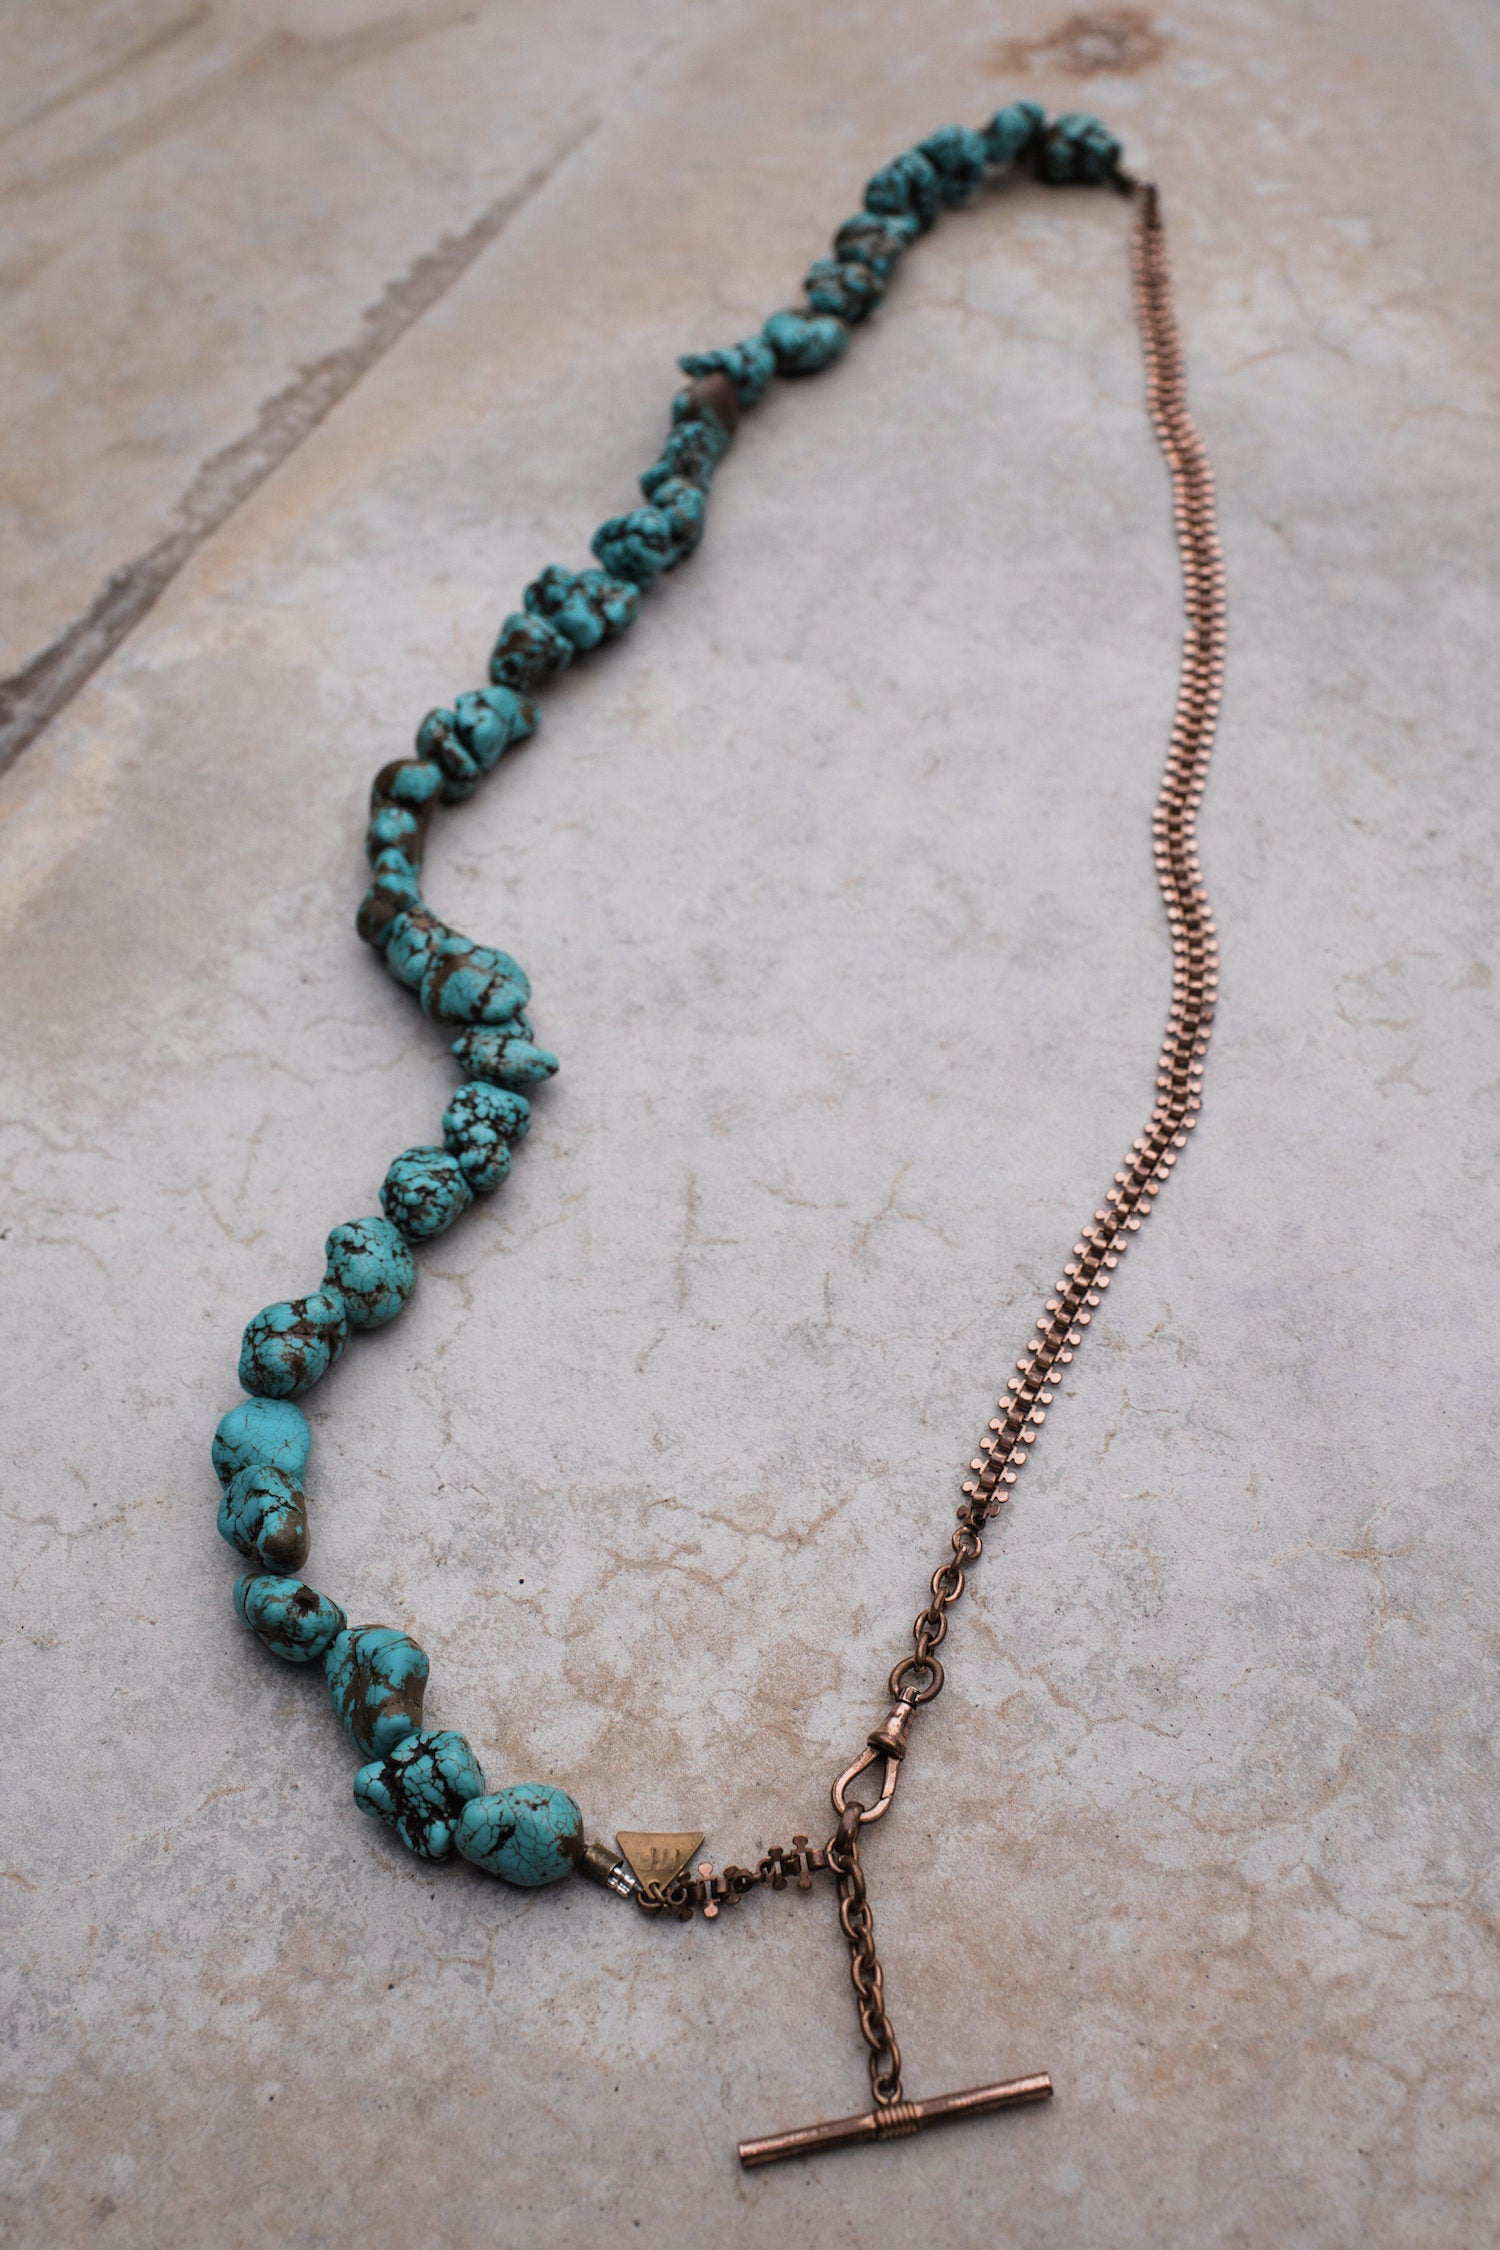 Turquoise Antique Copper Pocket Watch Chain Necklace